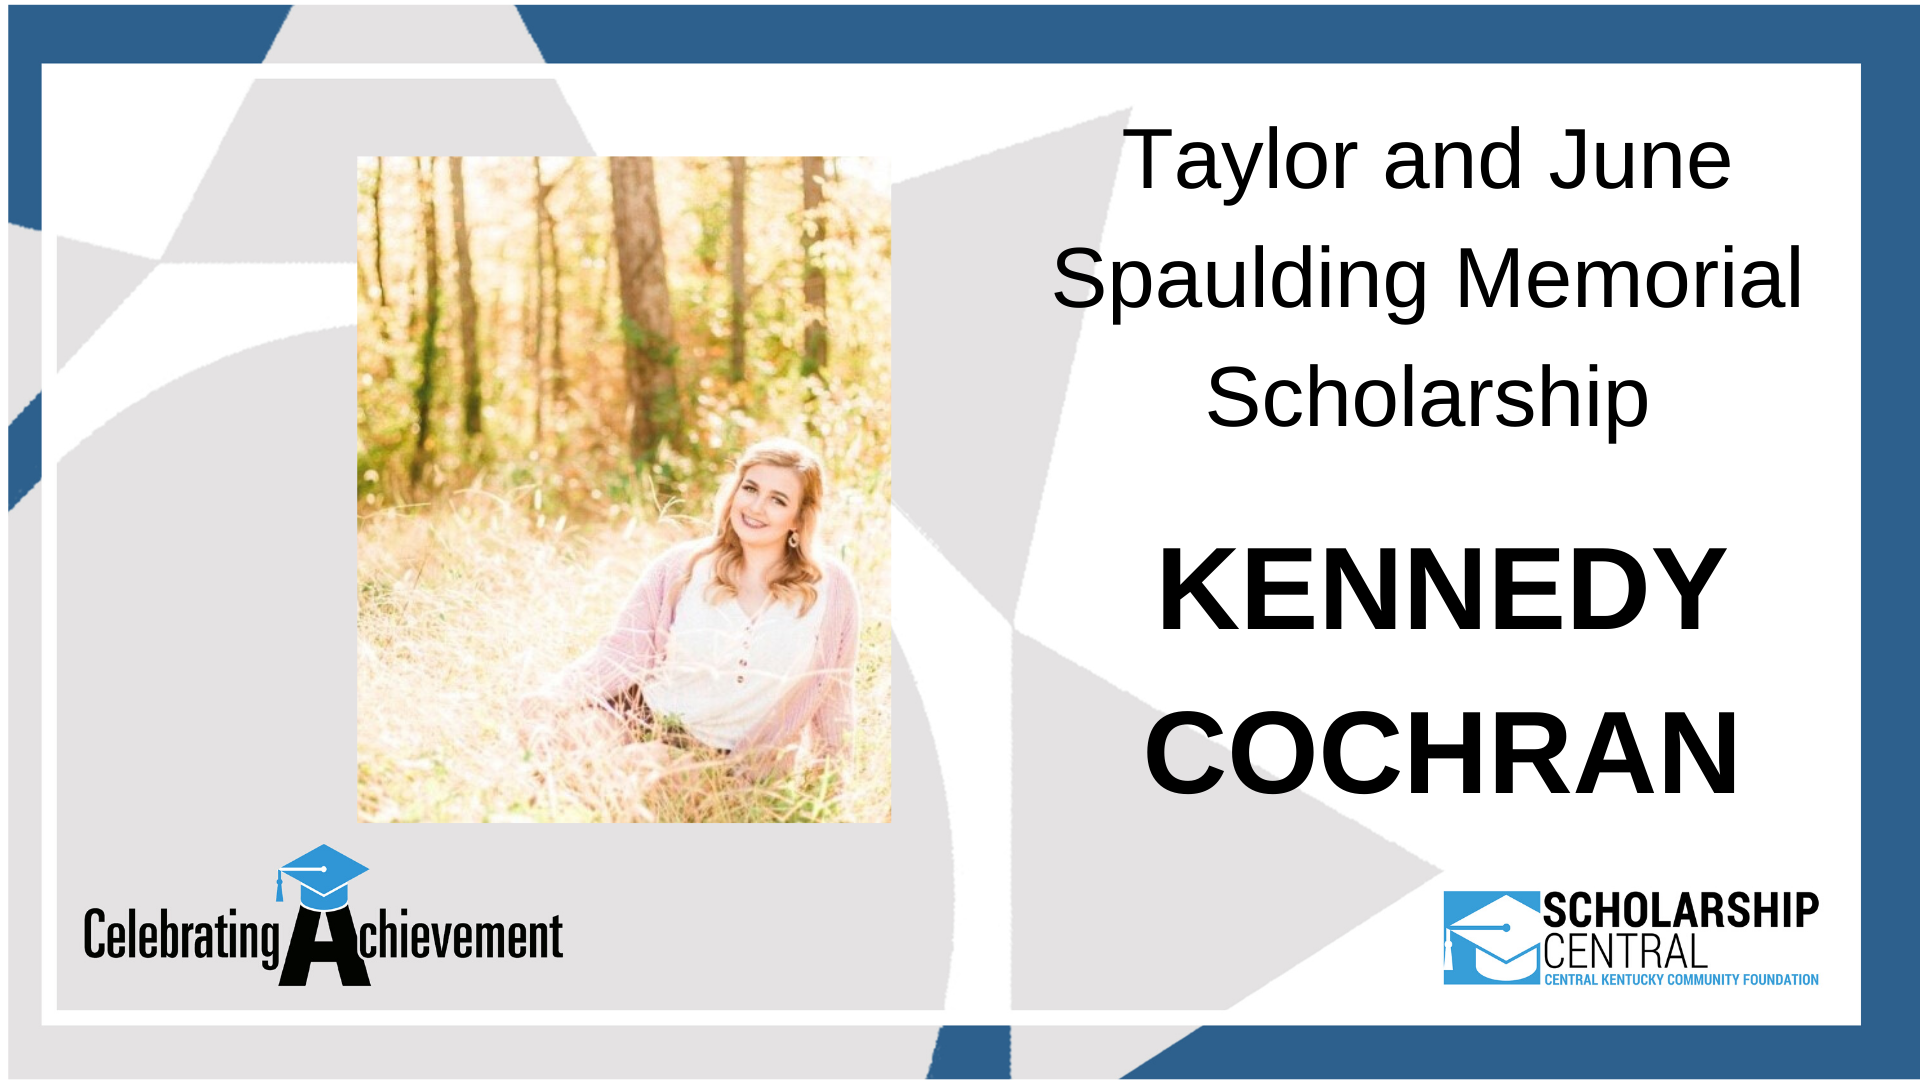 Taylor and June Spaulding Scholarship